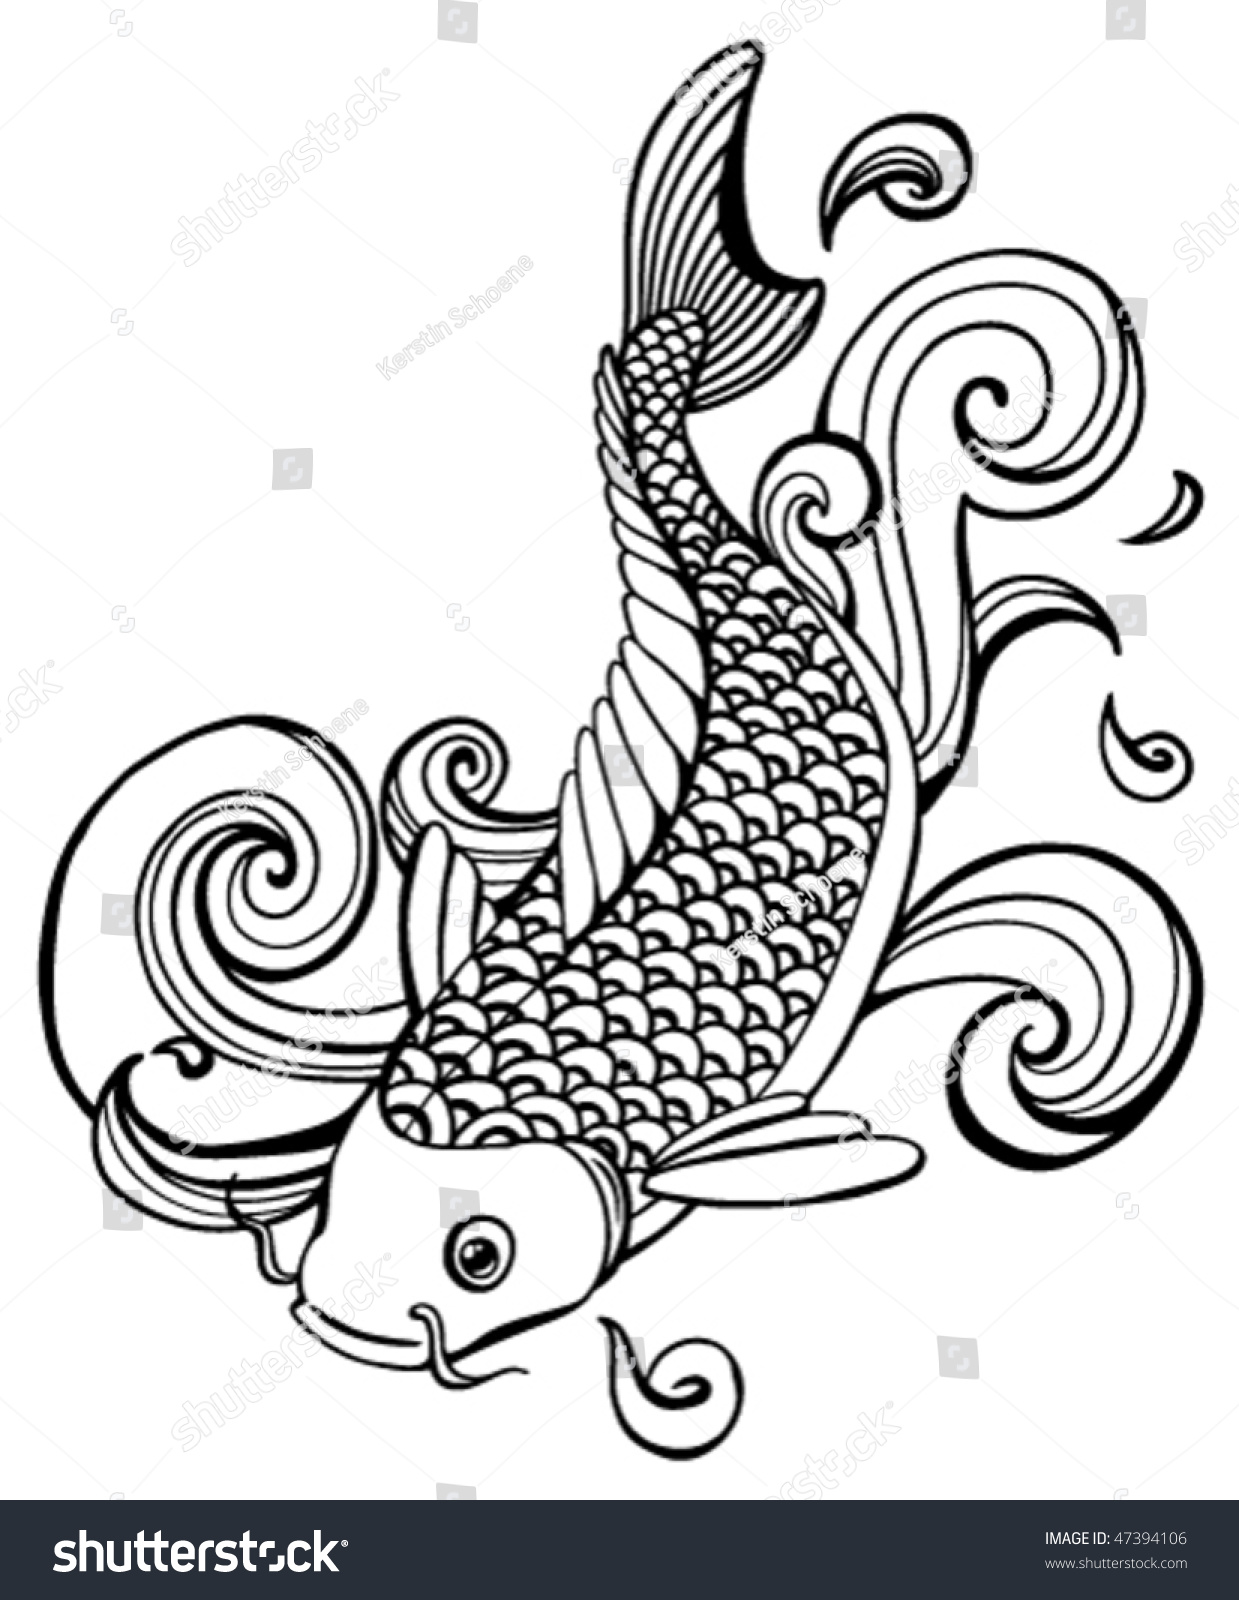 Koi fish vector stock vector 47394106 shutterstock for Koi fish vector